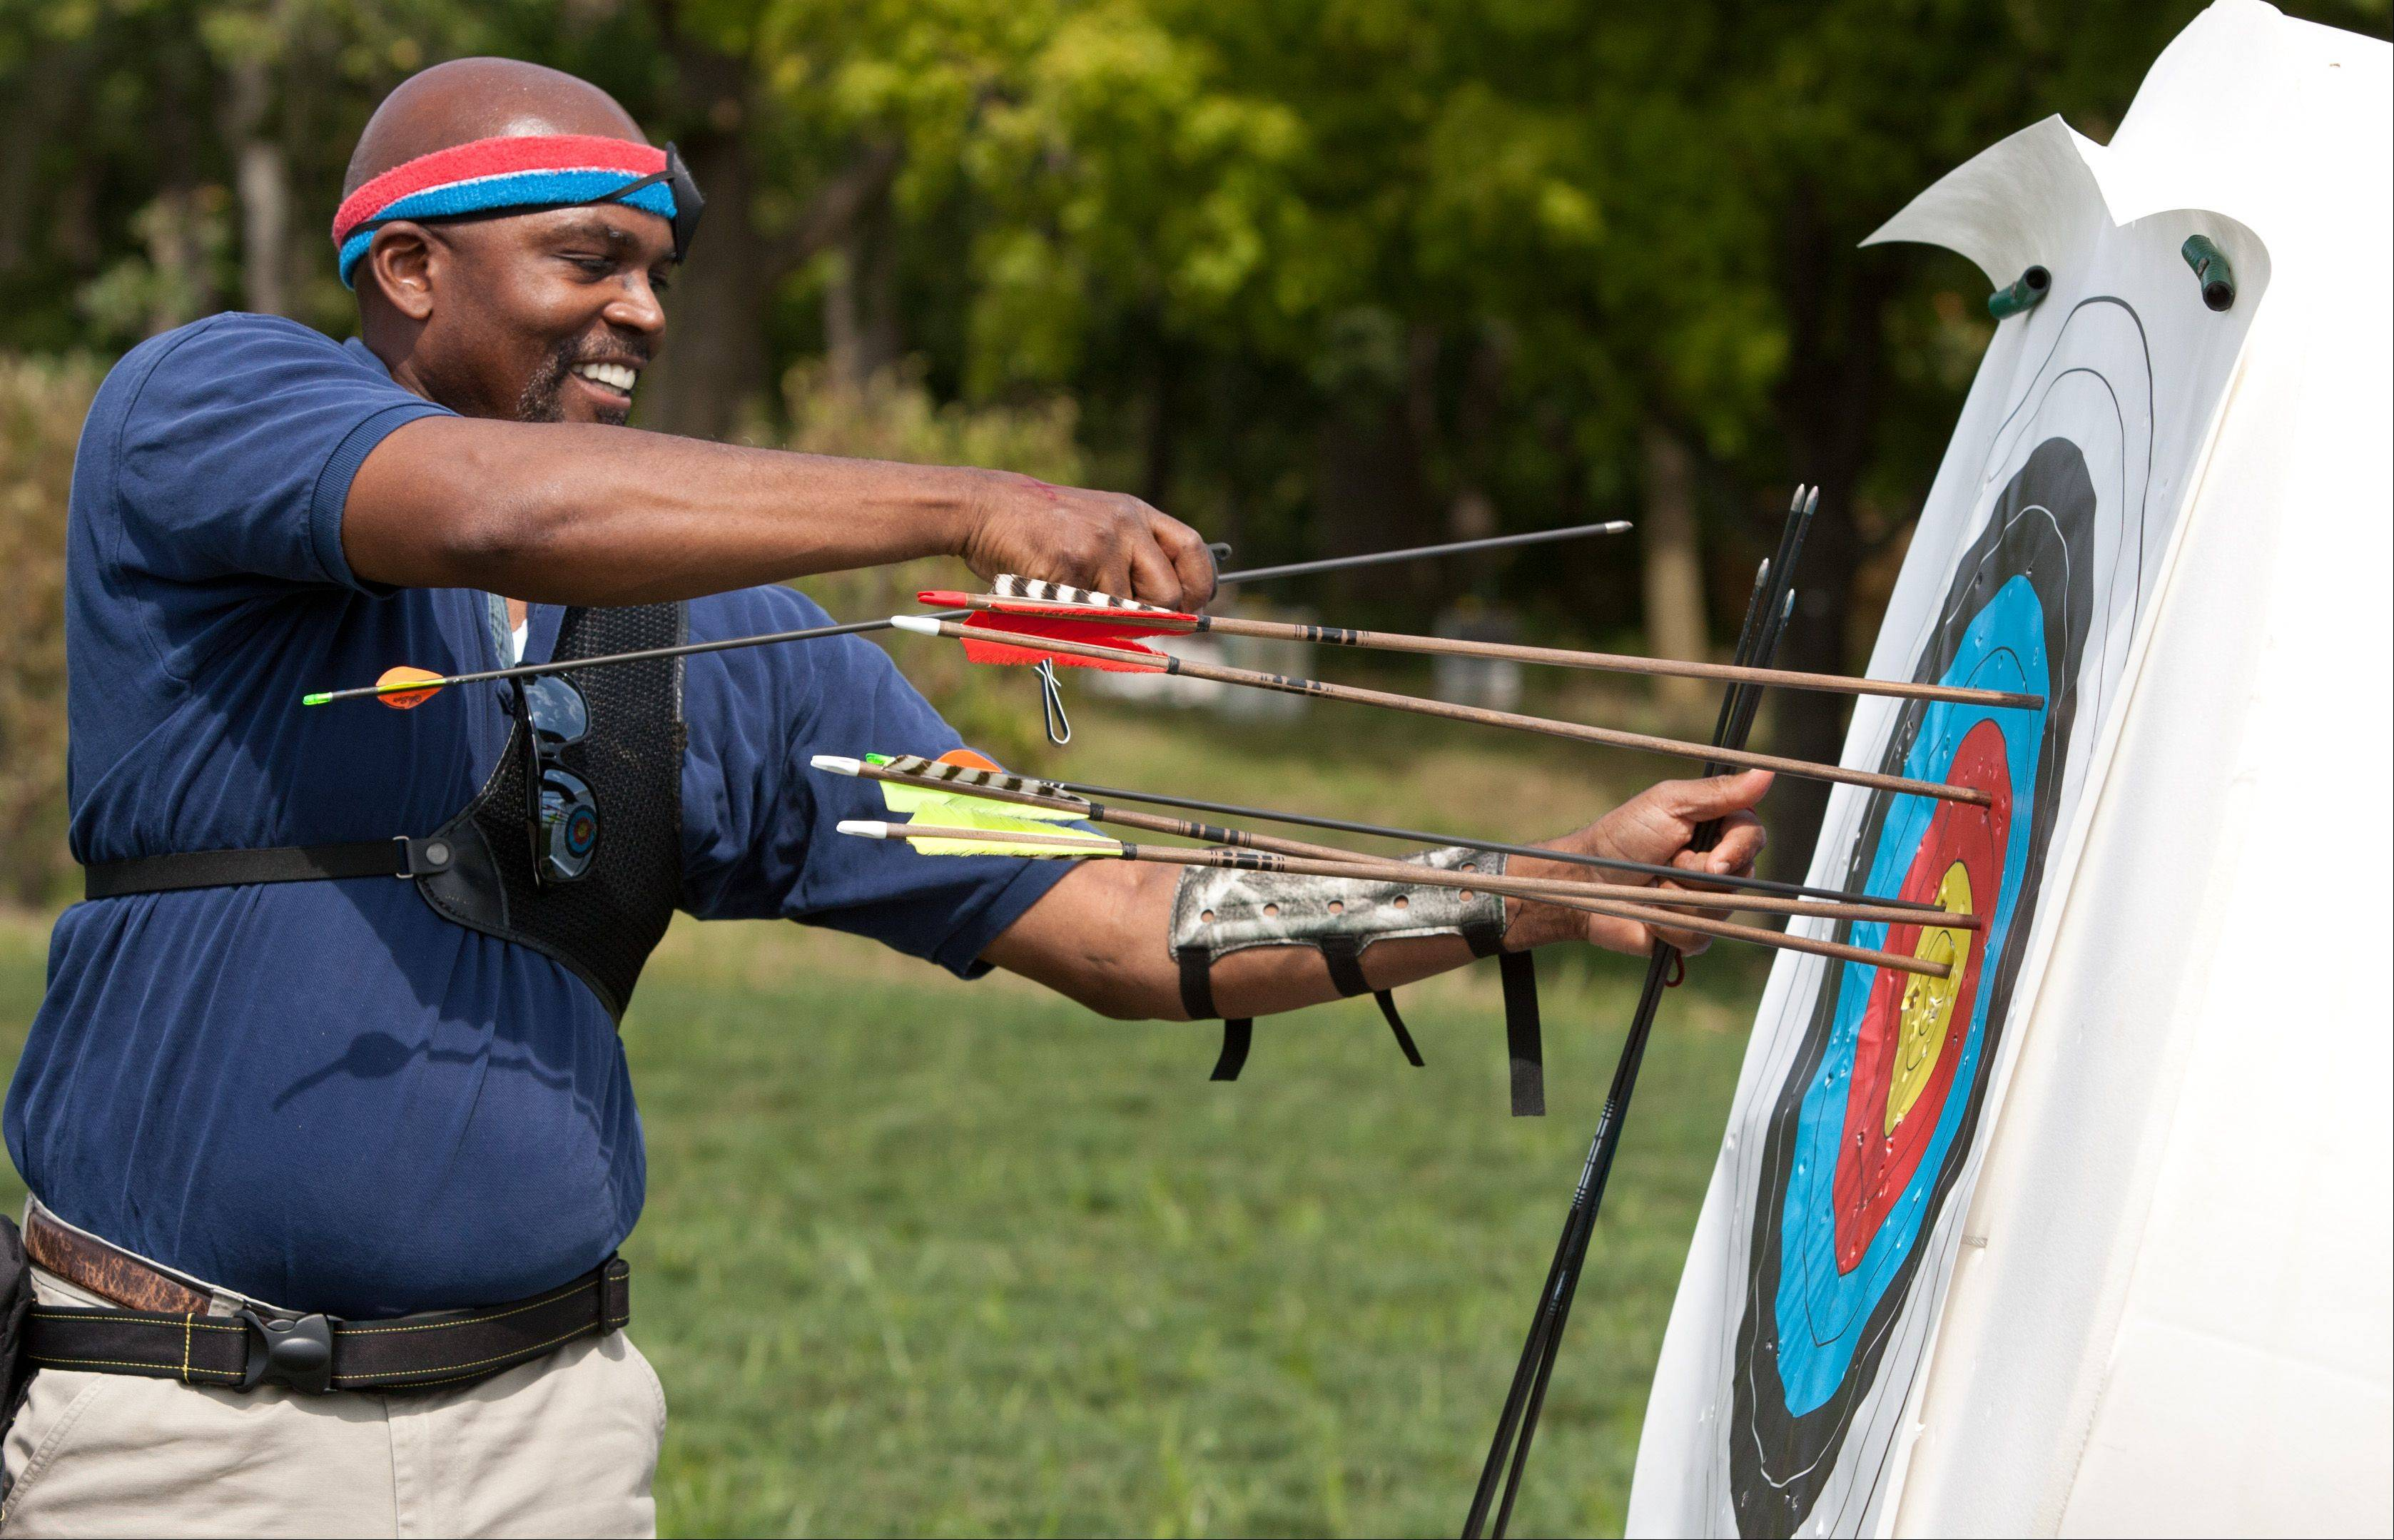 Daniel White/dwhite@dailyherald.comPriest Walker of Wheaton retrieves his arrows during the DuPage County Forest Preserve's opening of an upgraded archery range at the Blackwell Forest Preserve.